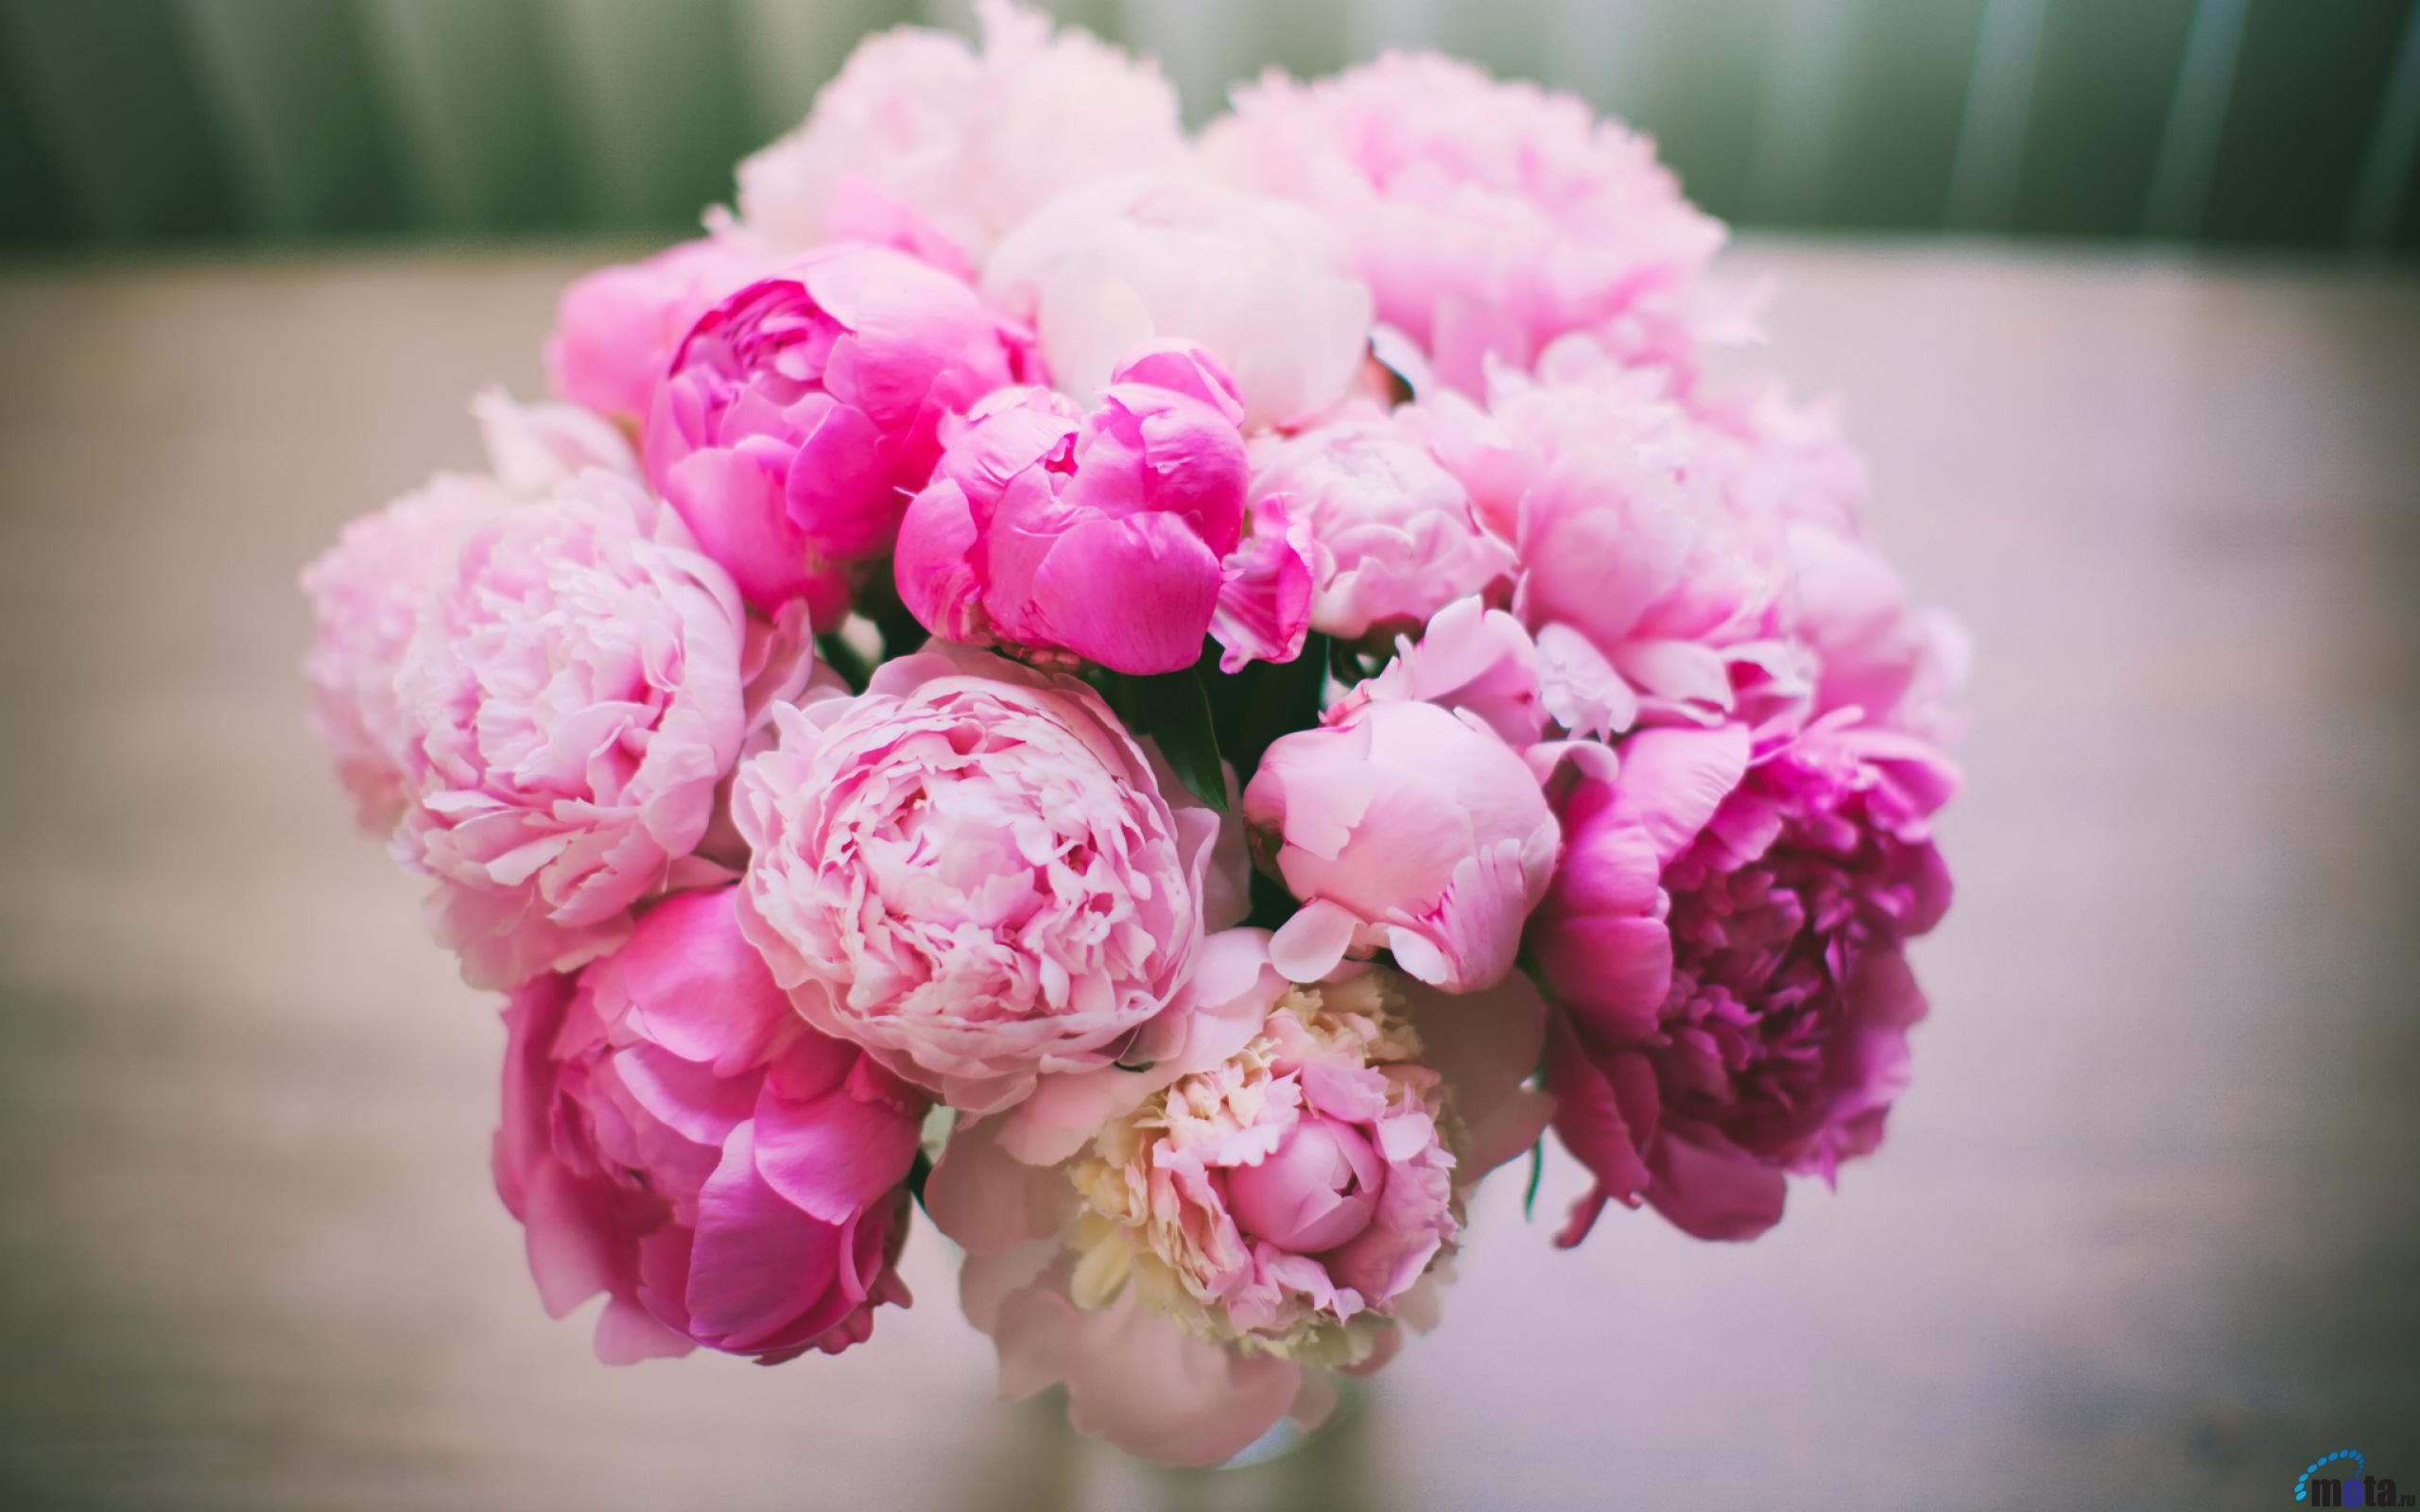 2560x1600 Download Wallpaper Pink peonies in a vase (2560 x 1600 .